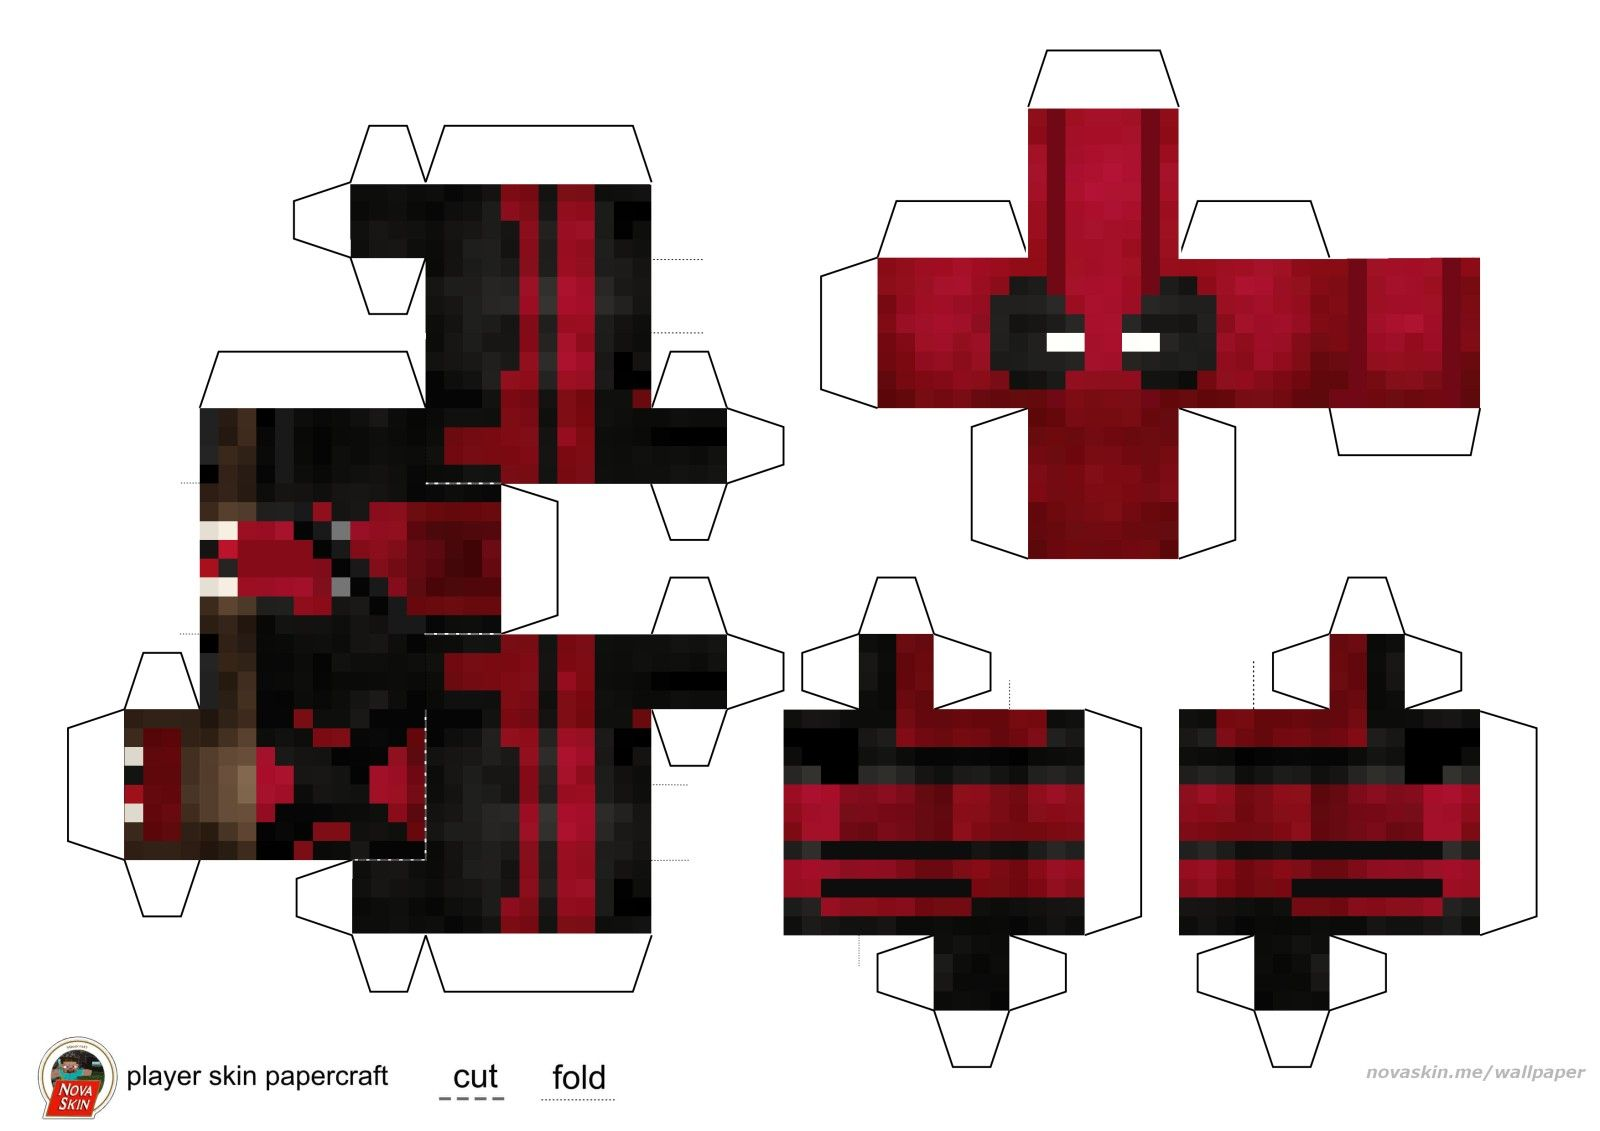 Nova Skin Minecraft Wallpaper Generator With Custom Skins Maquet - Nova skins fur minecraft